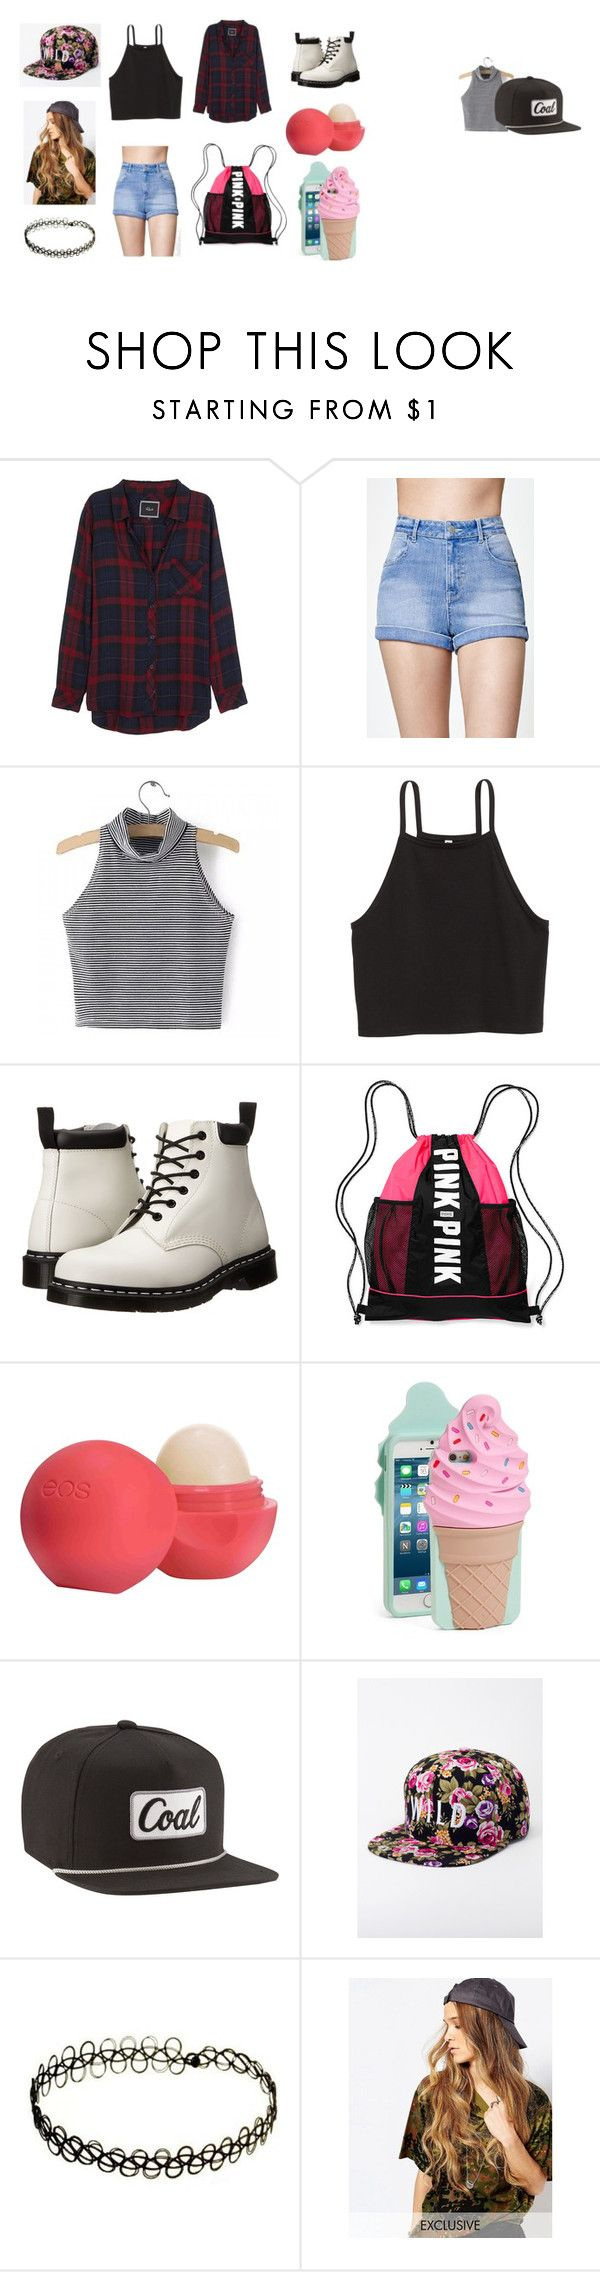 """Theme park outfit!"" by crazisuki on Polyvore featuring Rails, Kendall + Kylie, Dr. Martens, Victoria's Secret, Eos, Kate Spade, Coal, Kill Brand and Reclaimed Vintage"